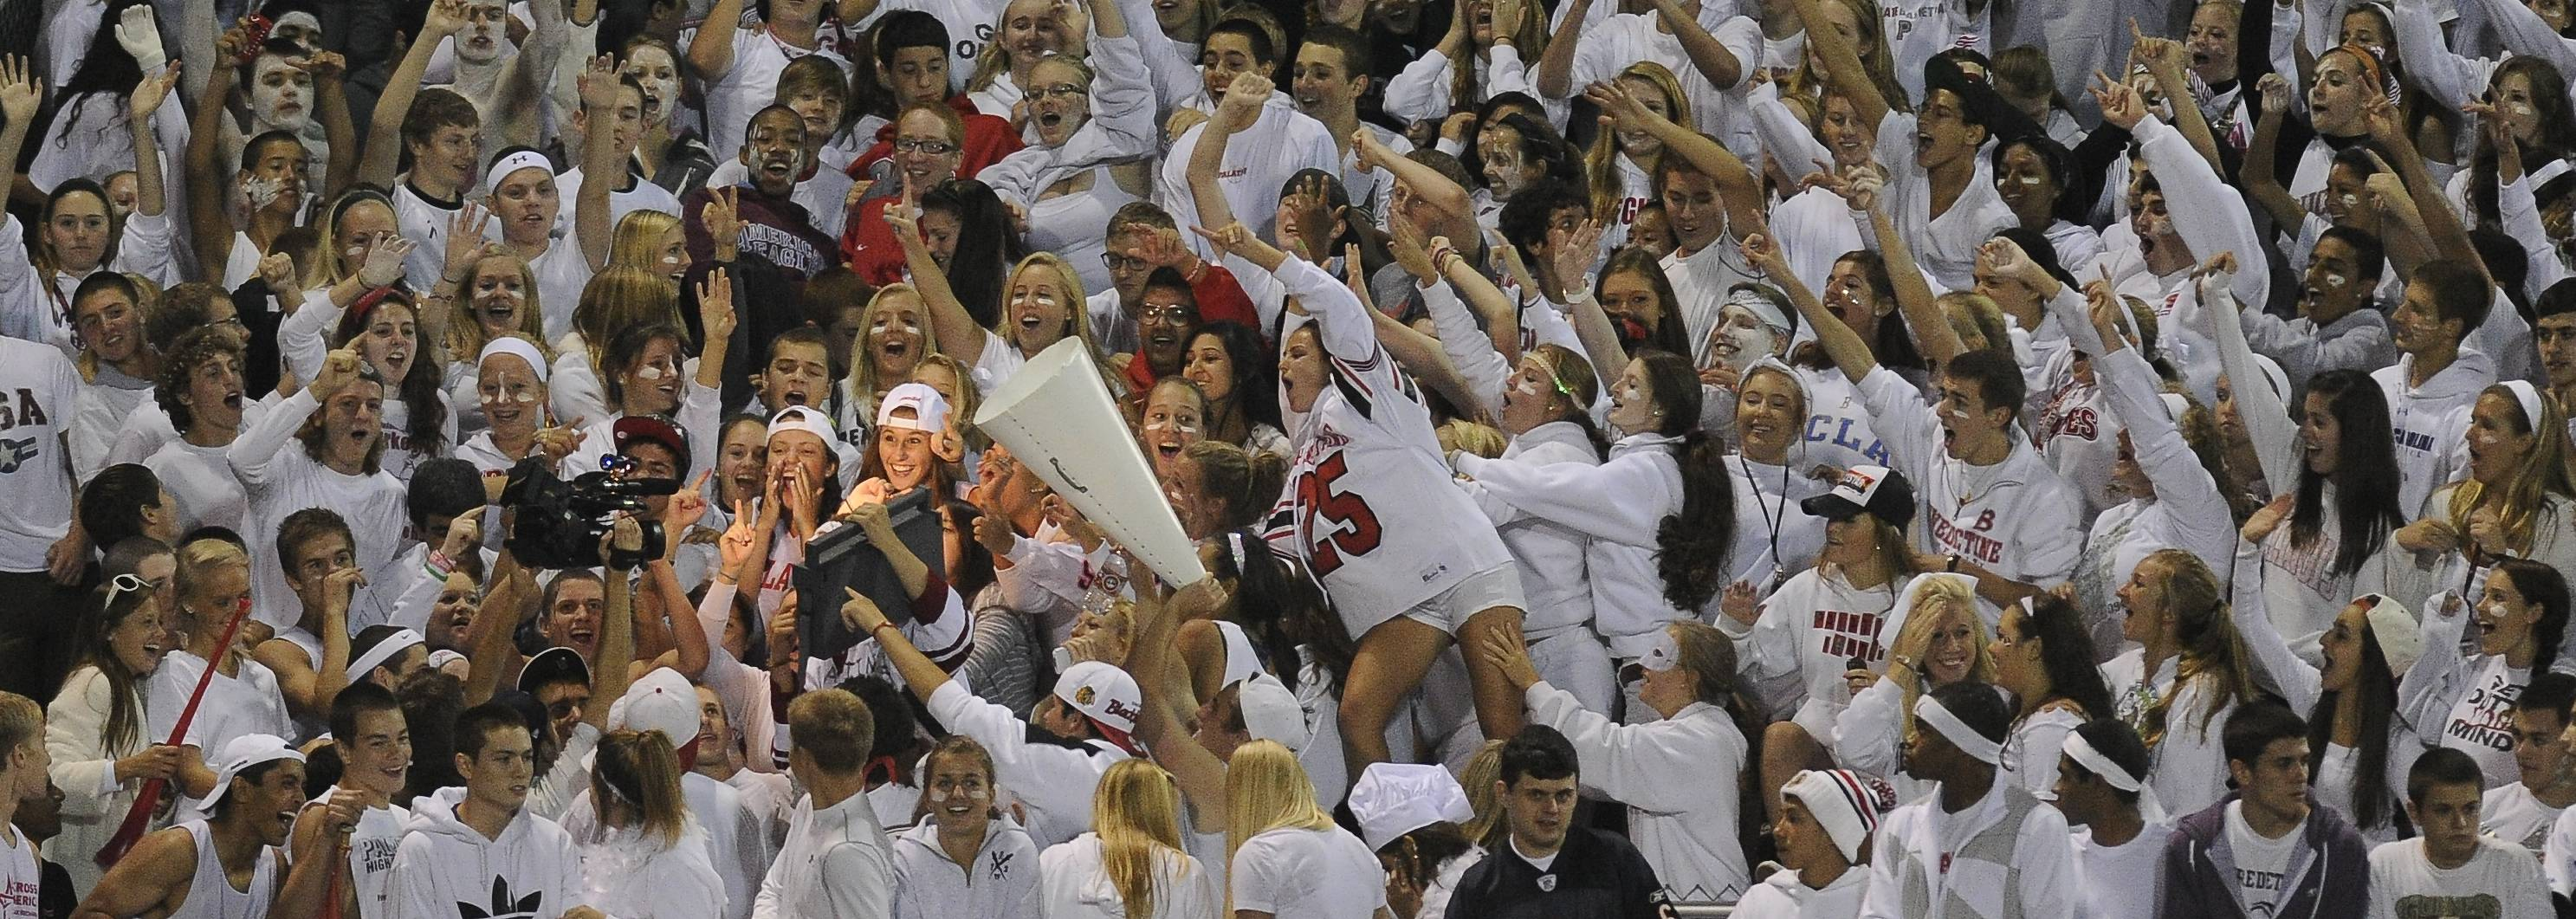 Week 3 matchup: Palatine vs. Elk Grove Village -- the fans